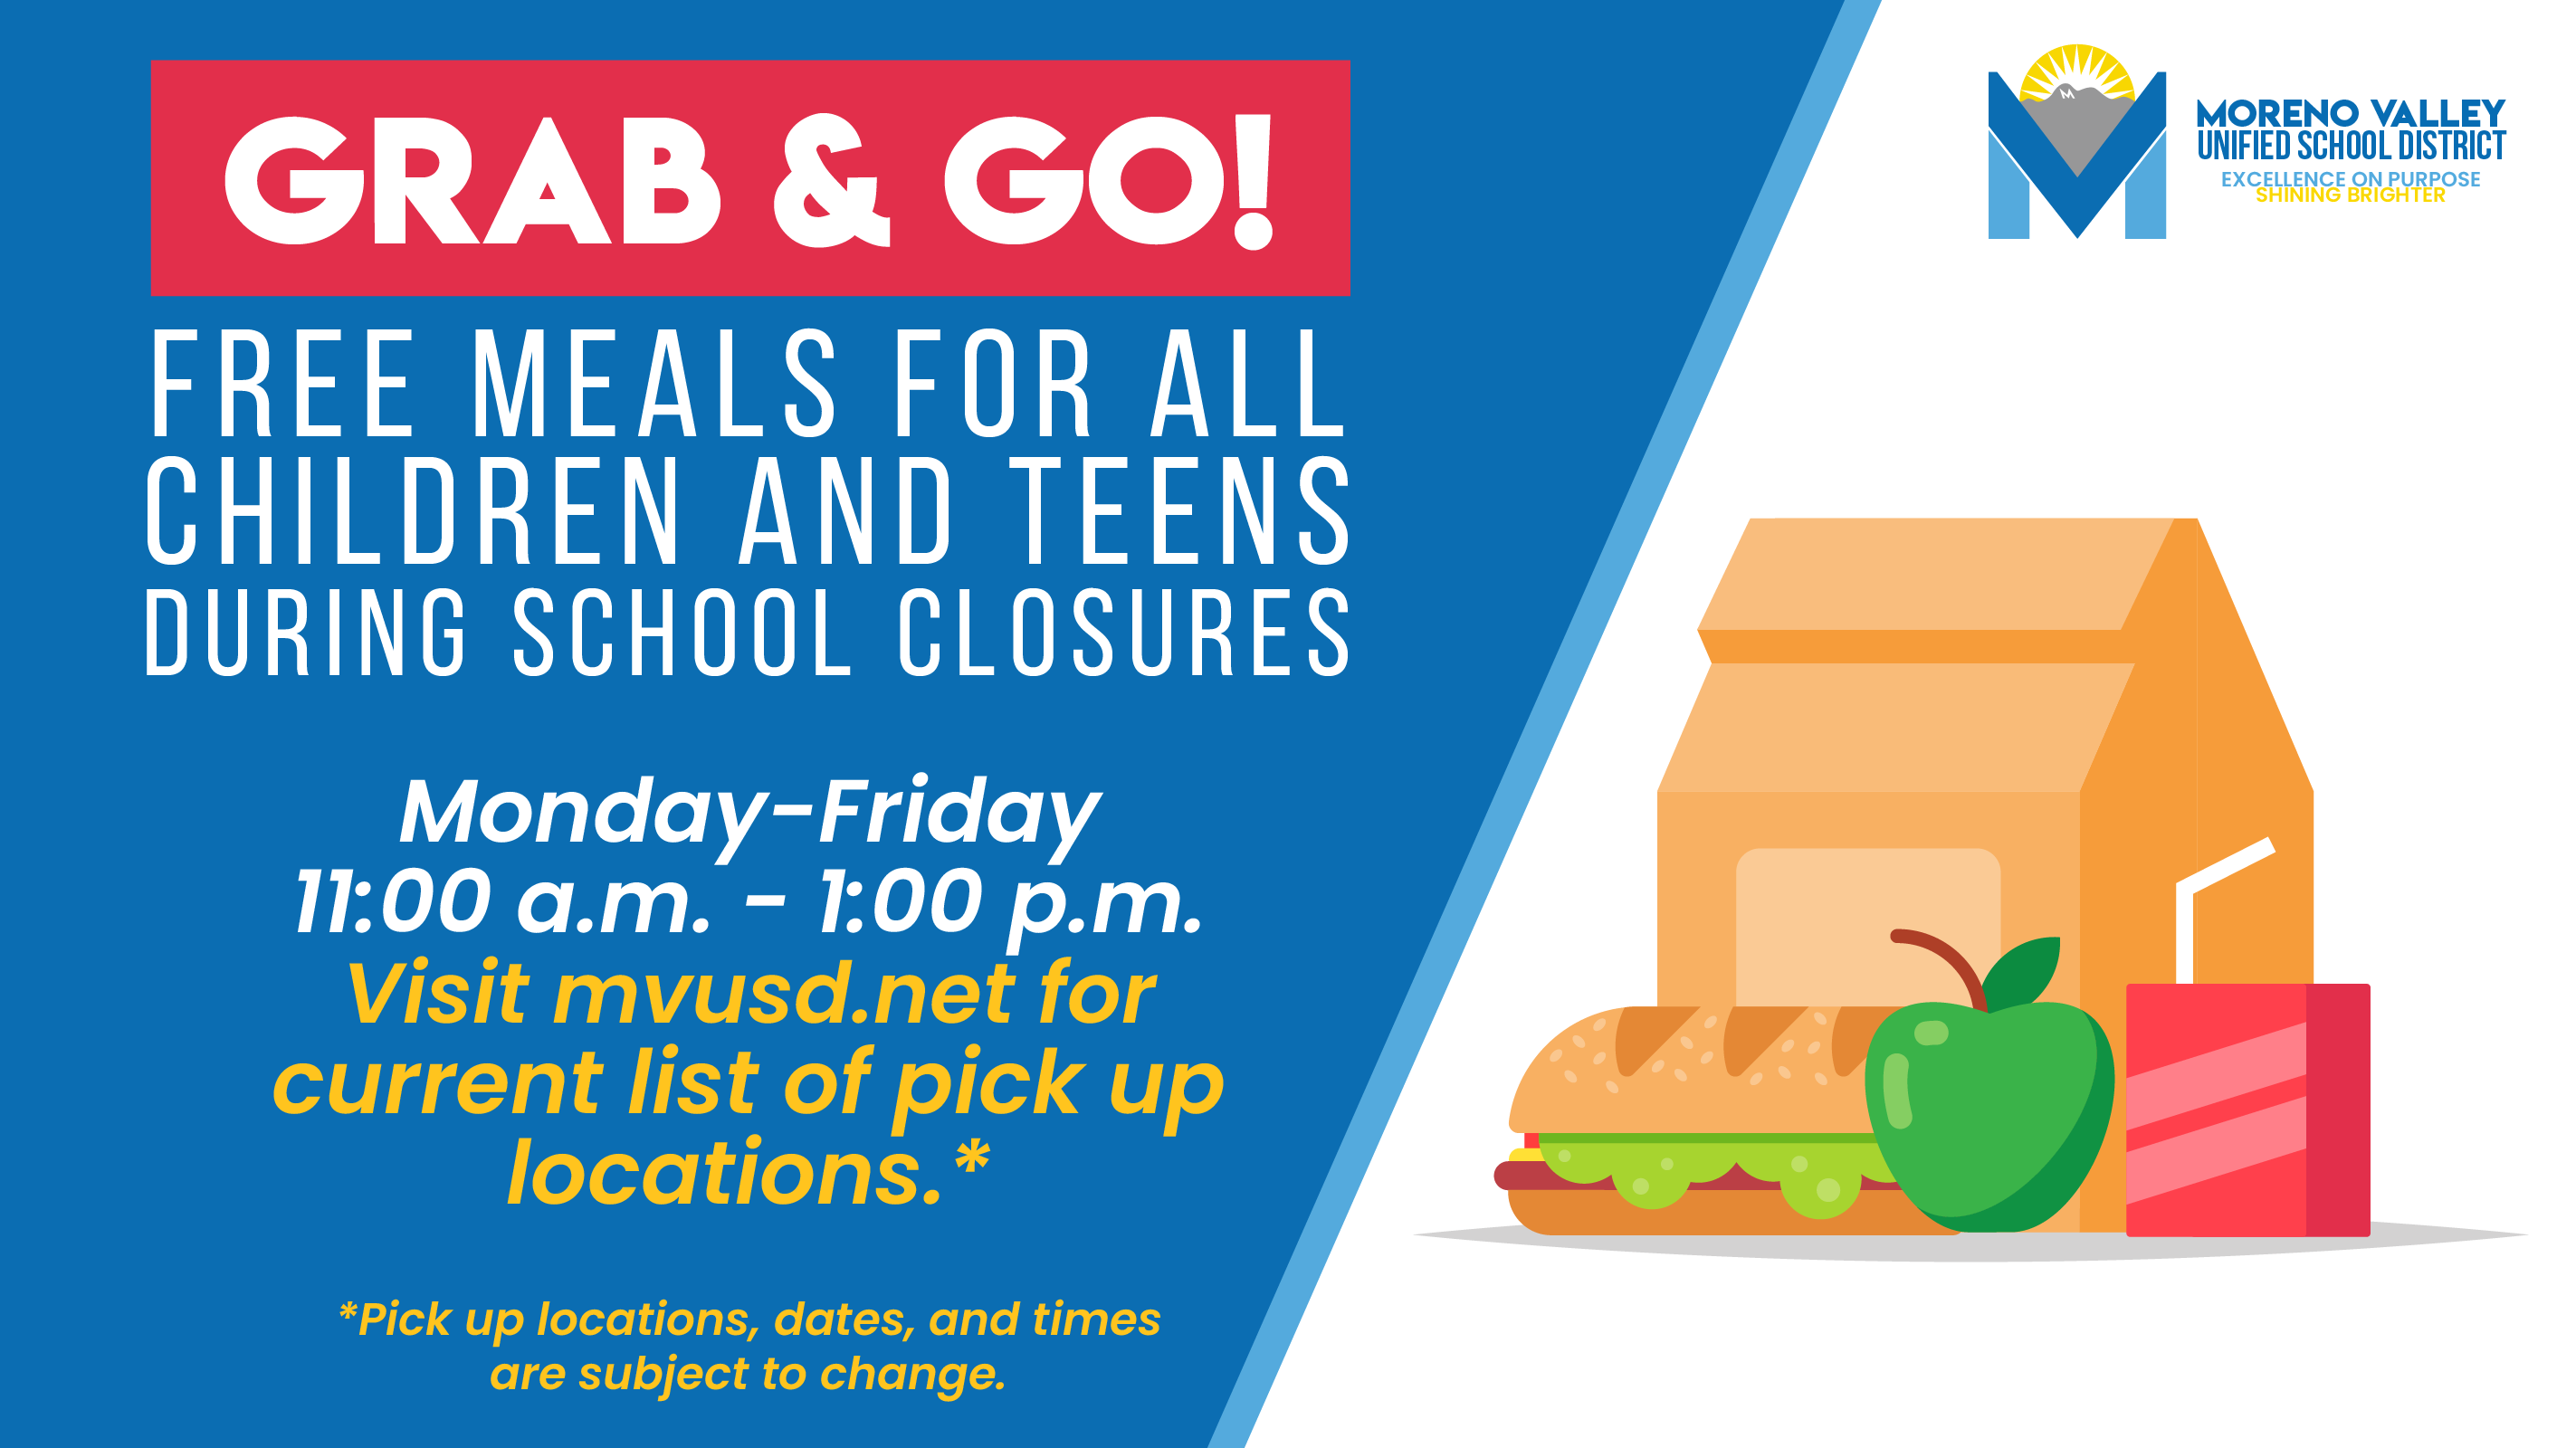 Grab & Go free lunch meals